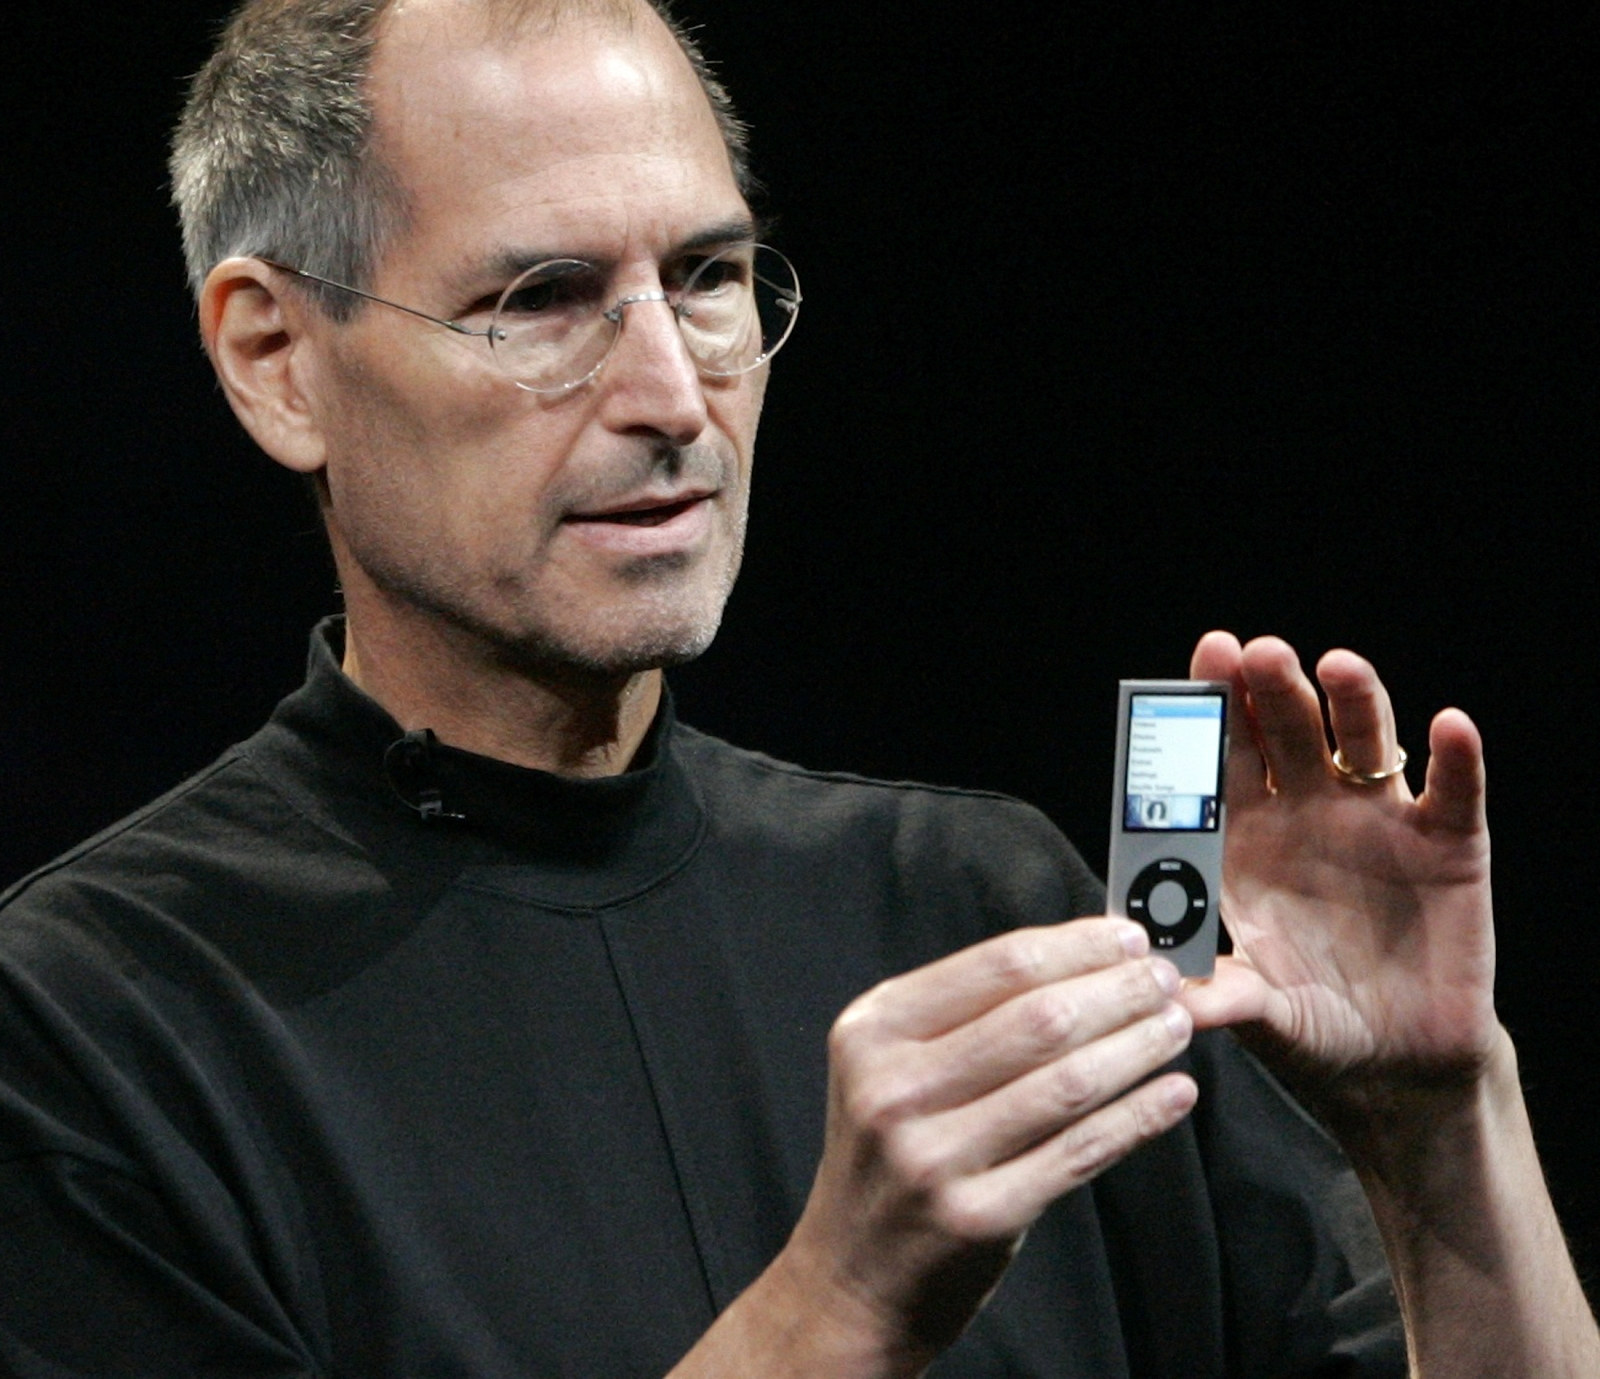 Steve Jobs musical is coming and he would have hated the name